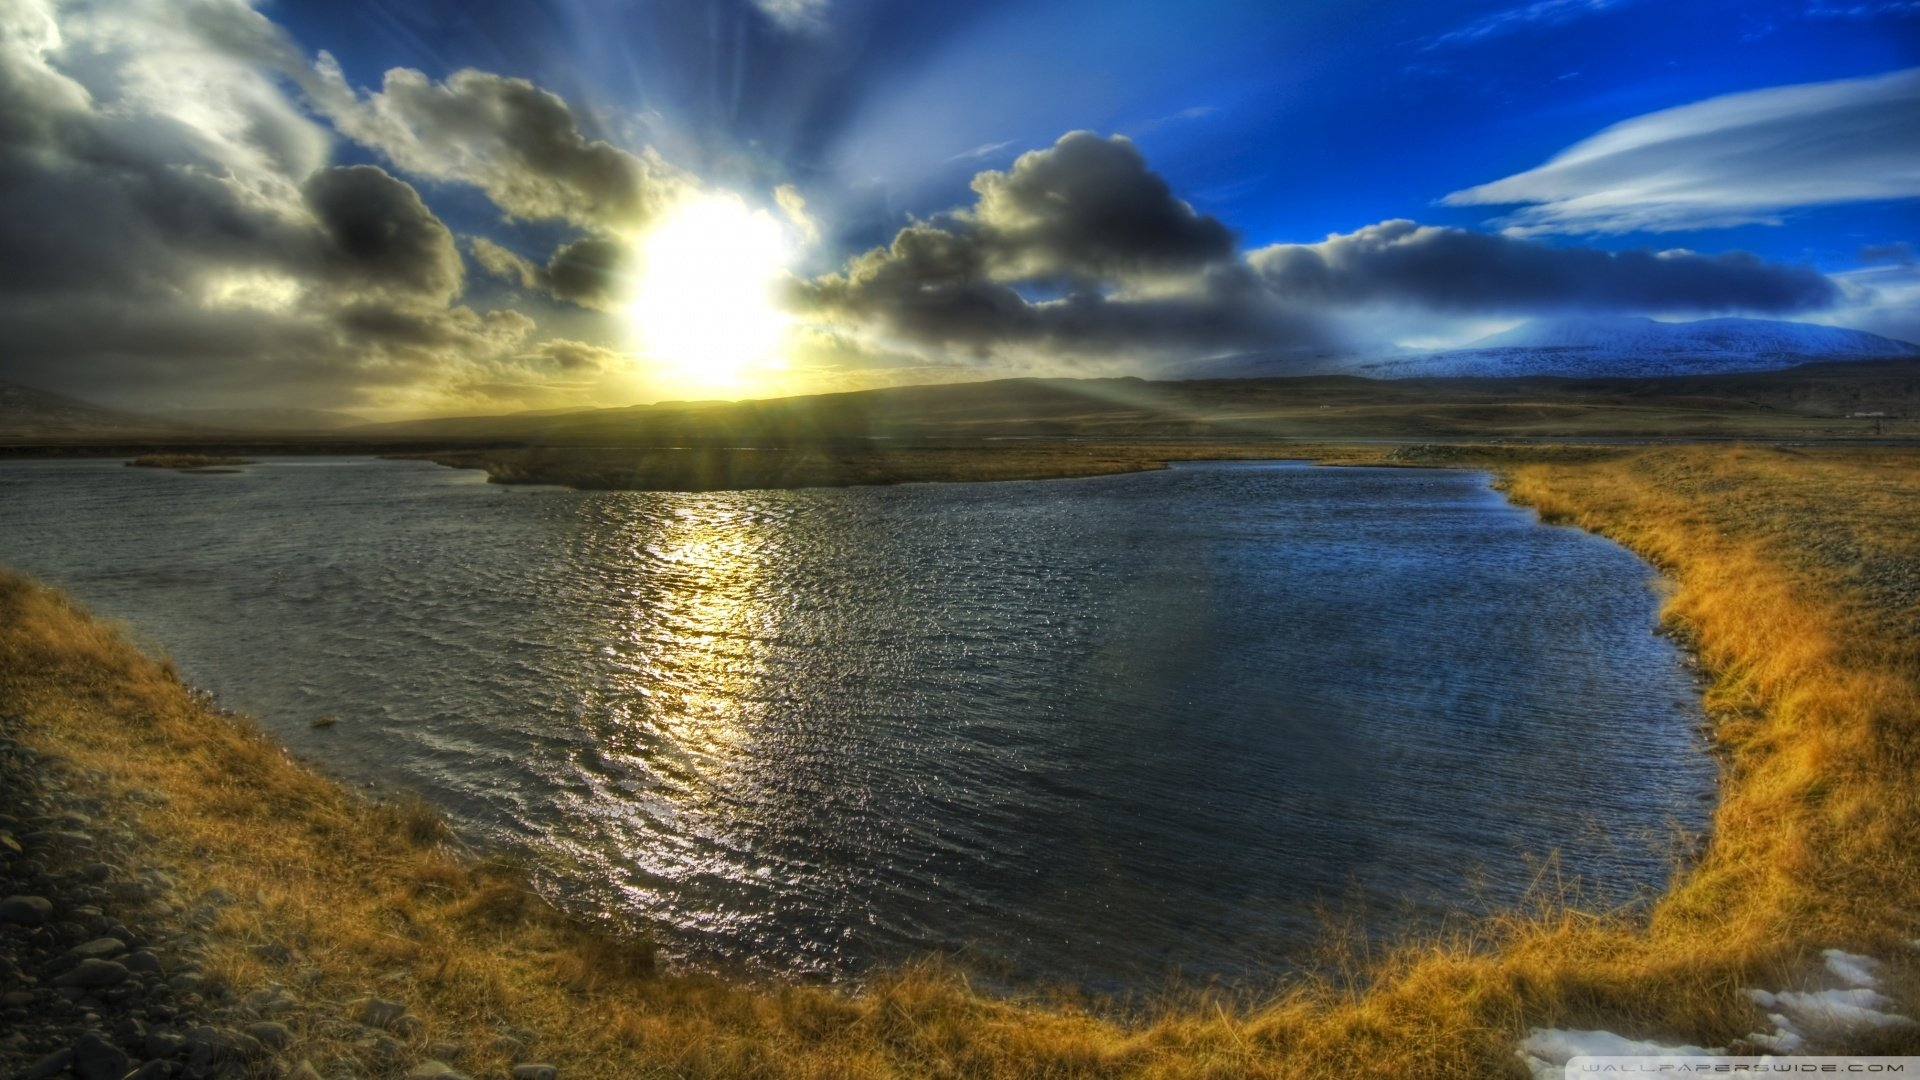 Photography - HDR  Cloud Sky Lake Water Sunbeam Landscape Nature Photography Wallpaper